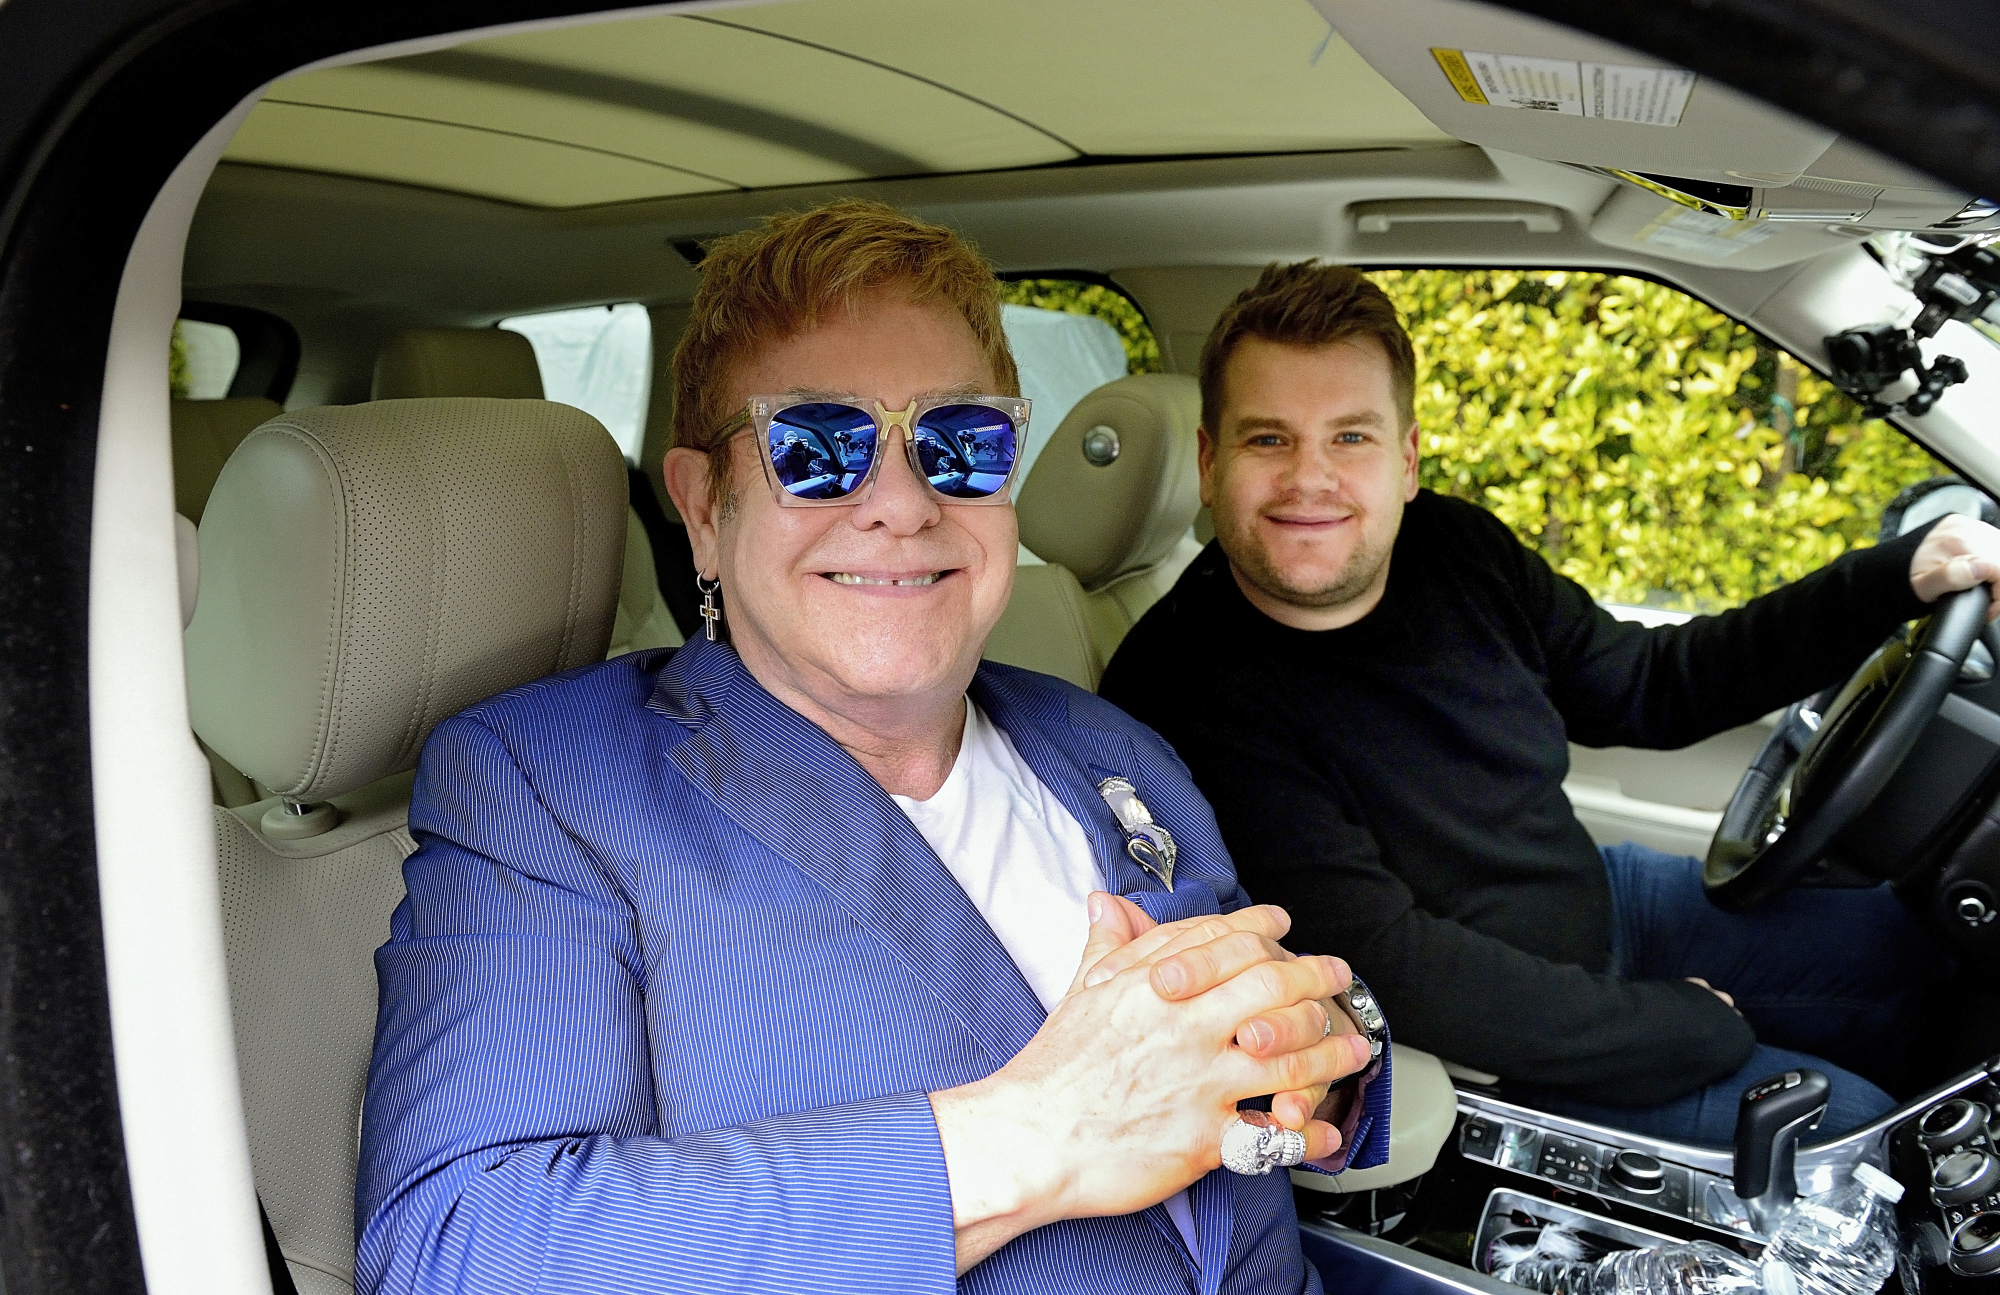 Elton John joins James Corden for Carpool Karaoke on  The Late Late Show with James Corden,  Feb. 7th, 2016